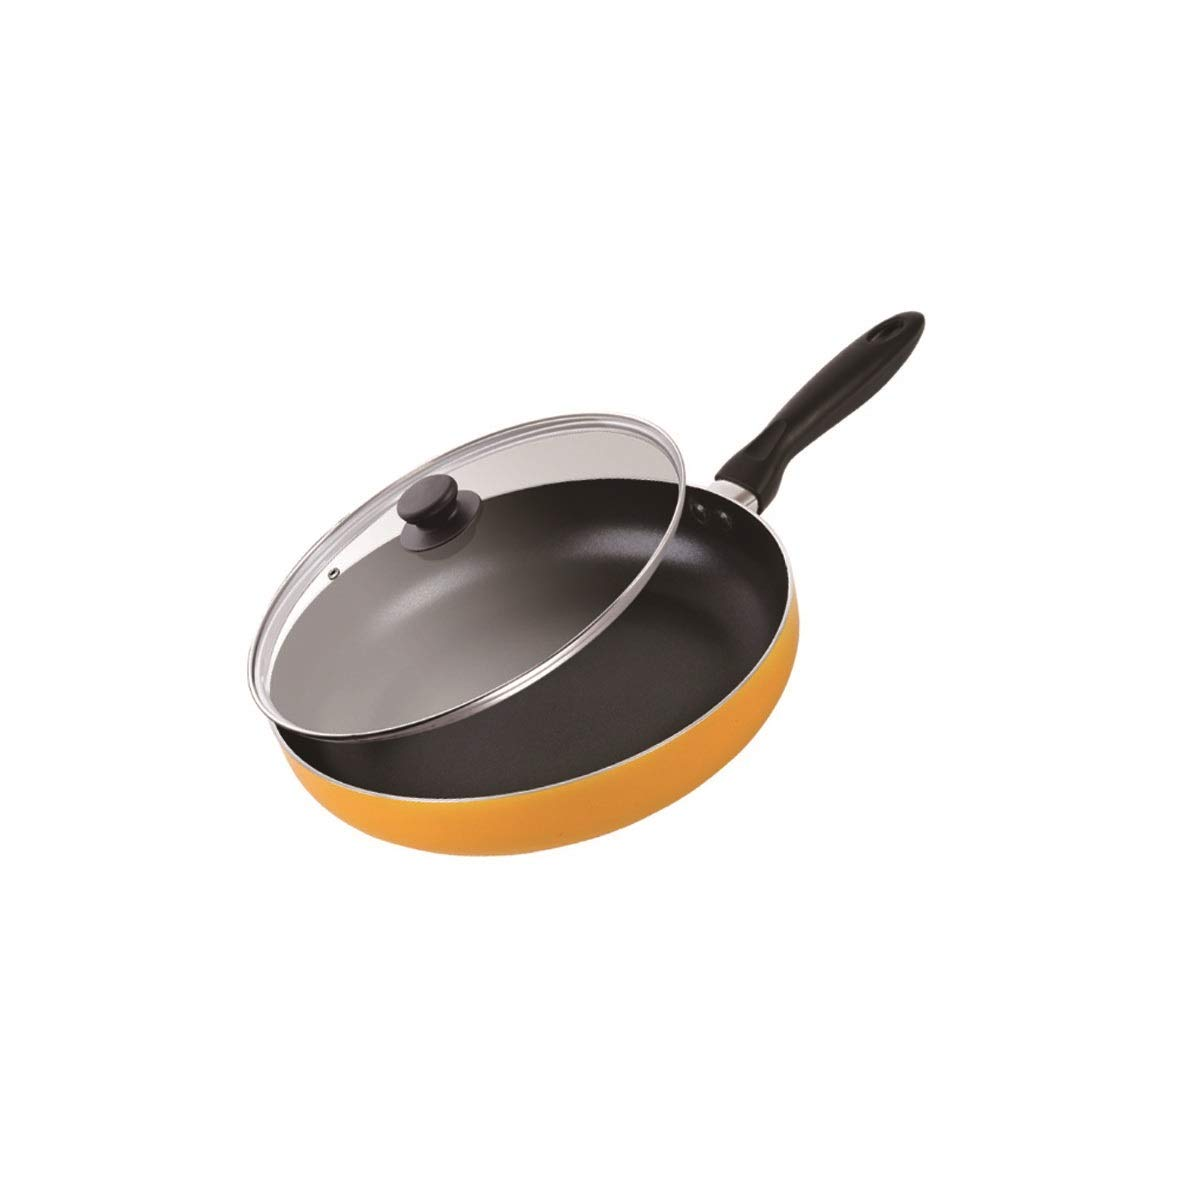 Hengtongtongxun Steak Frying Pan, Pan Not Sticky Less Fumes, Mini Frying Steak Special Pot, Strong and Sturdy (Size : 28cm)